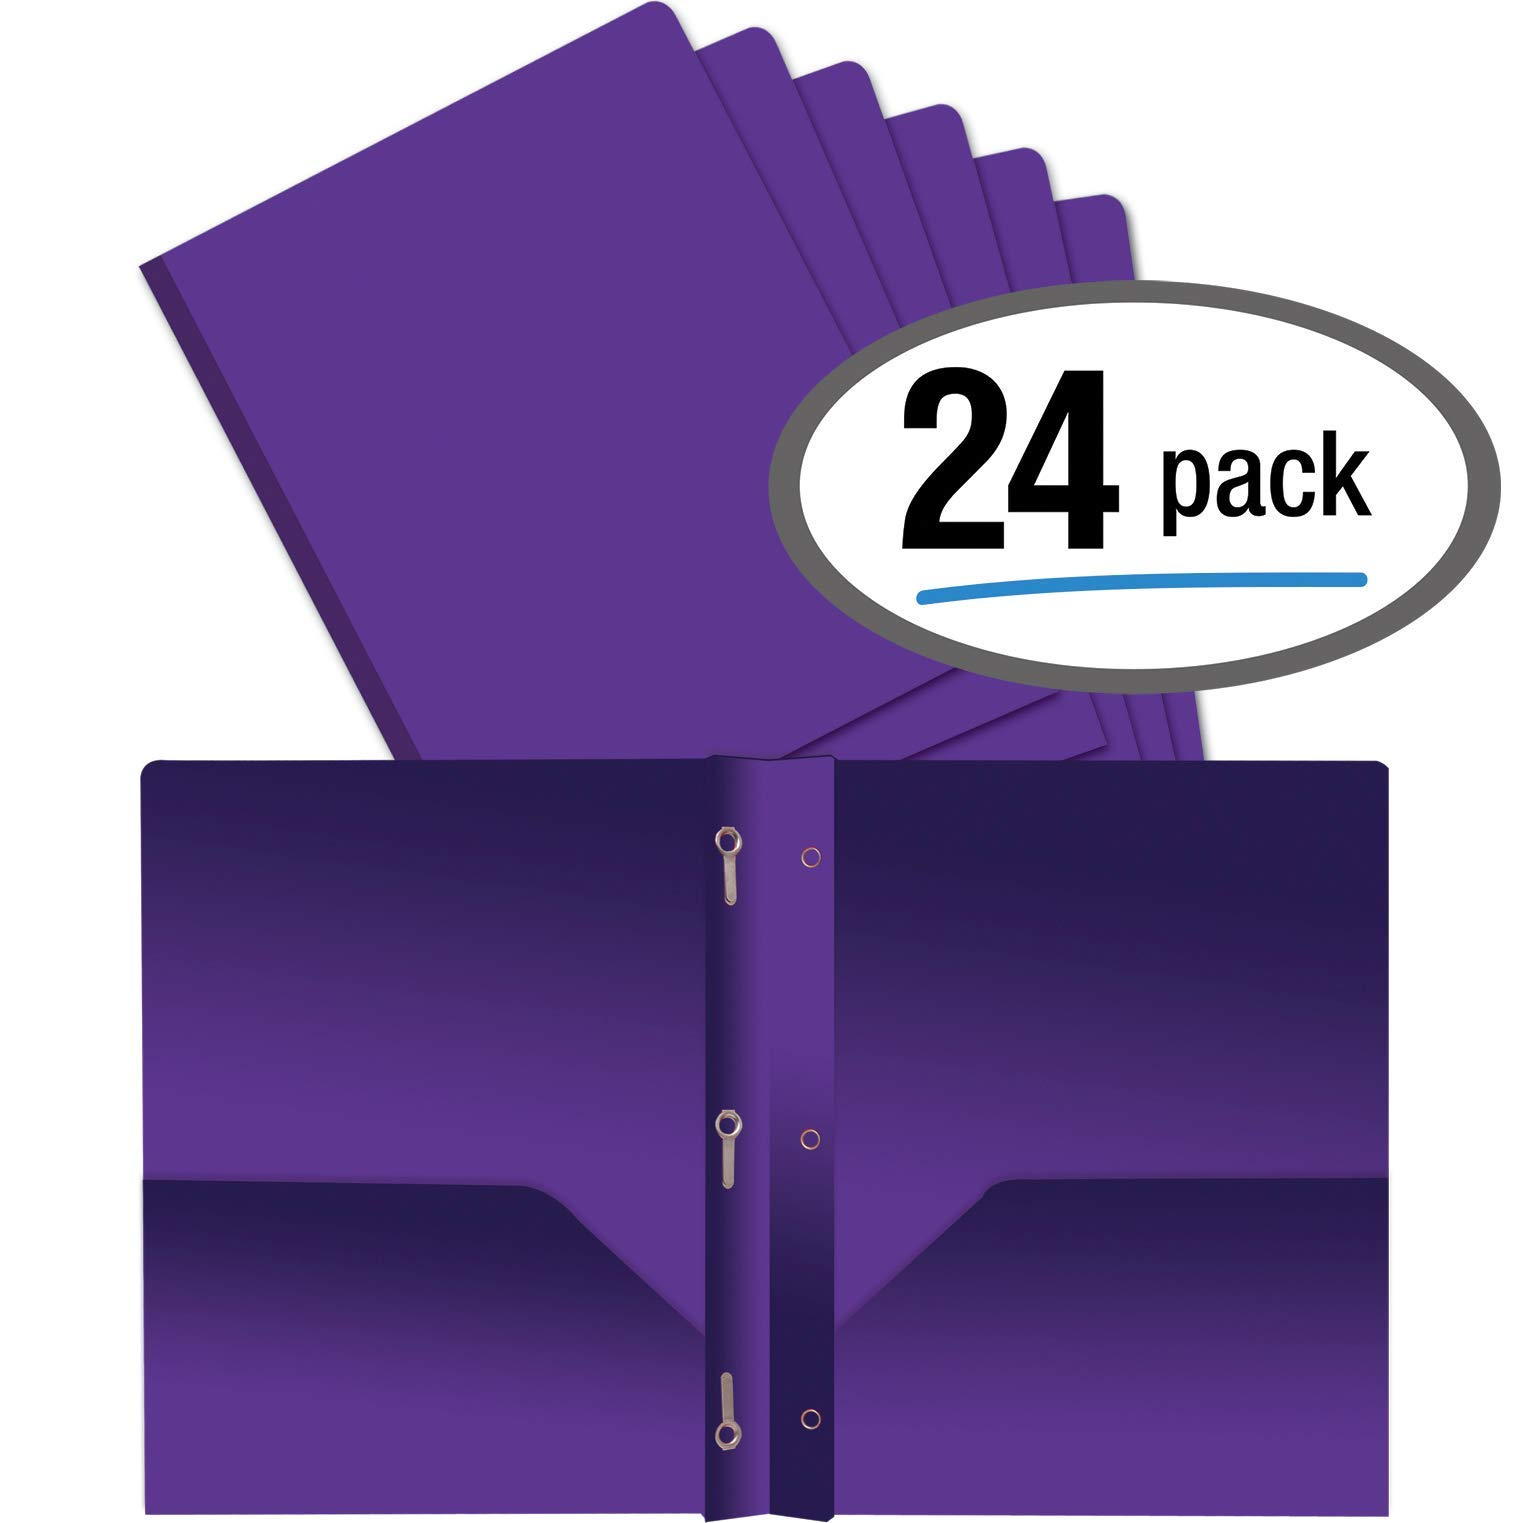 Better Office Products Purple Plastic 2 Pocket Folders with Prongs, Heavyweight, Letter Size Poly Folders, 24 Pack, with 3 Metal Prongs Fastener Clips, Purple by Better Office Products